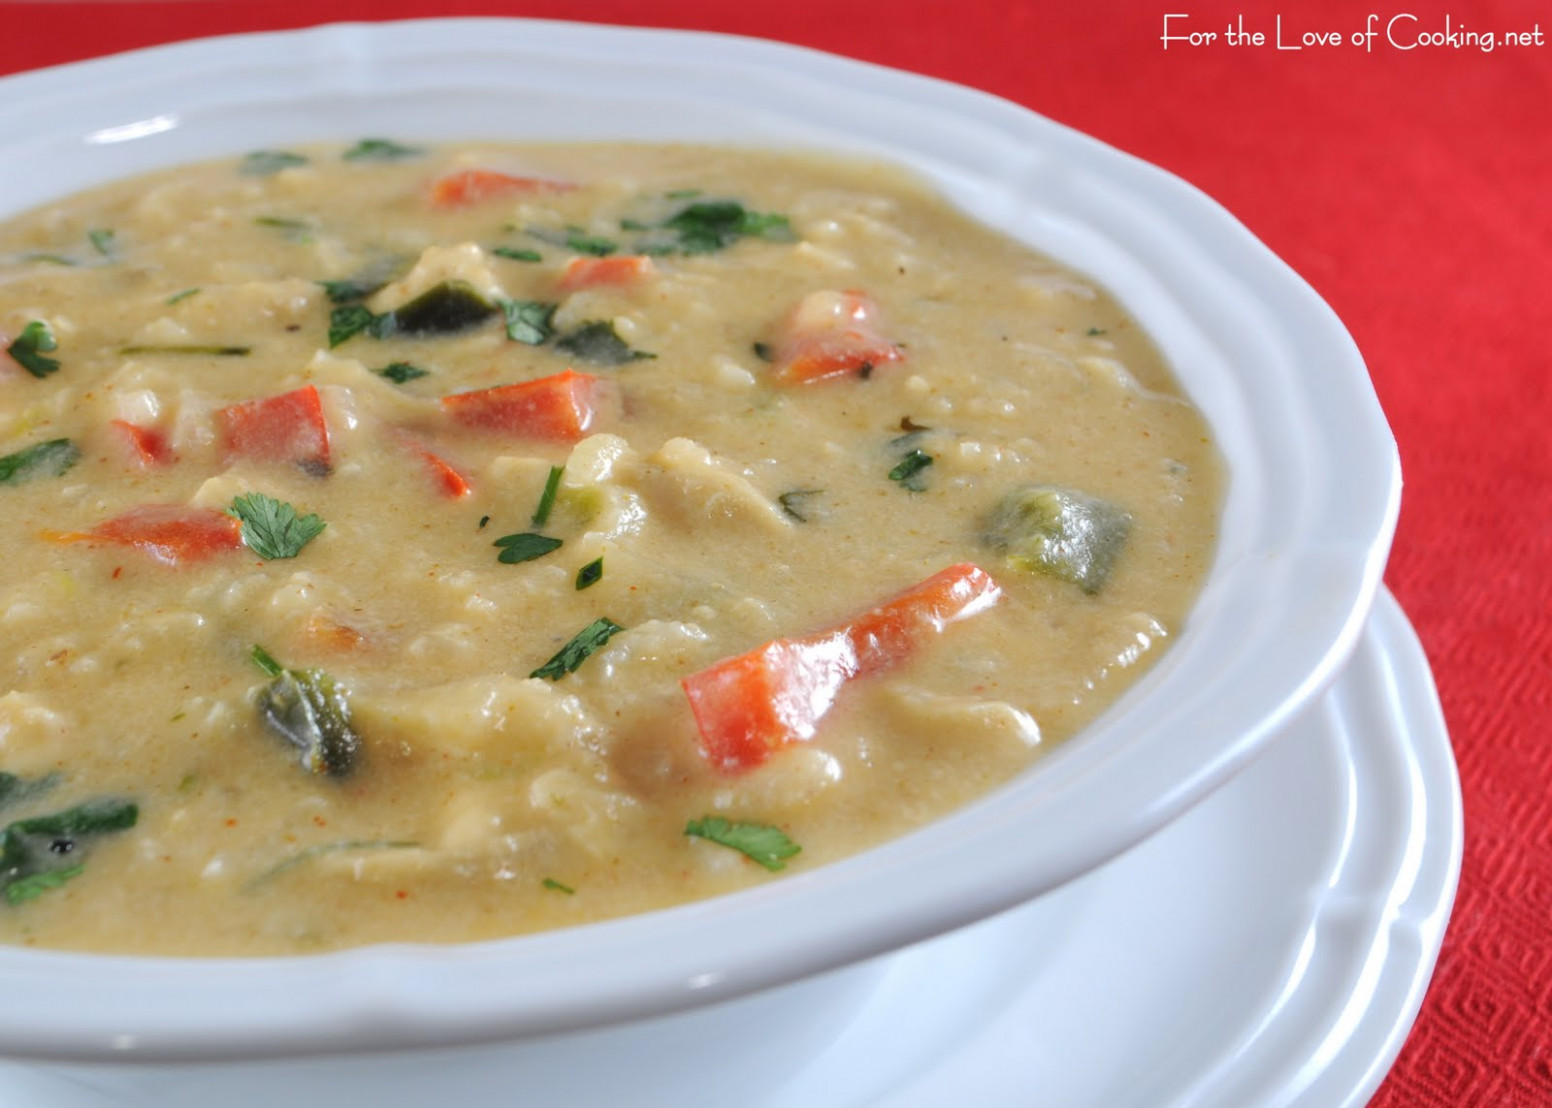 Southwestern Cream of Chicken Soup | For the Love of Cooking